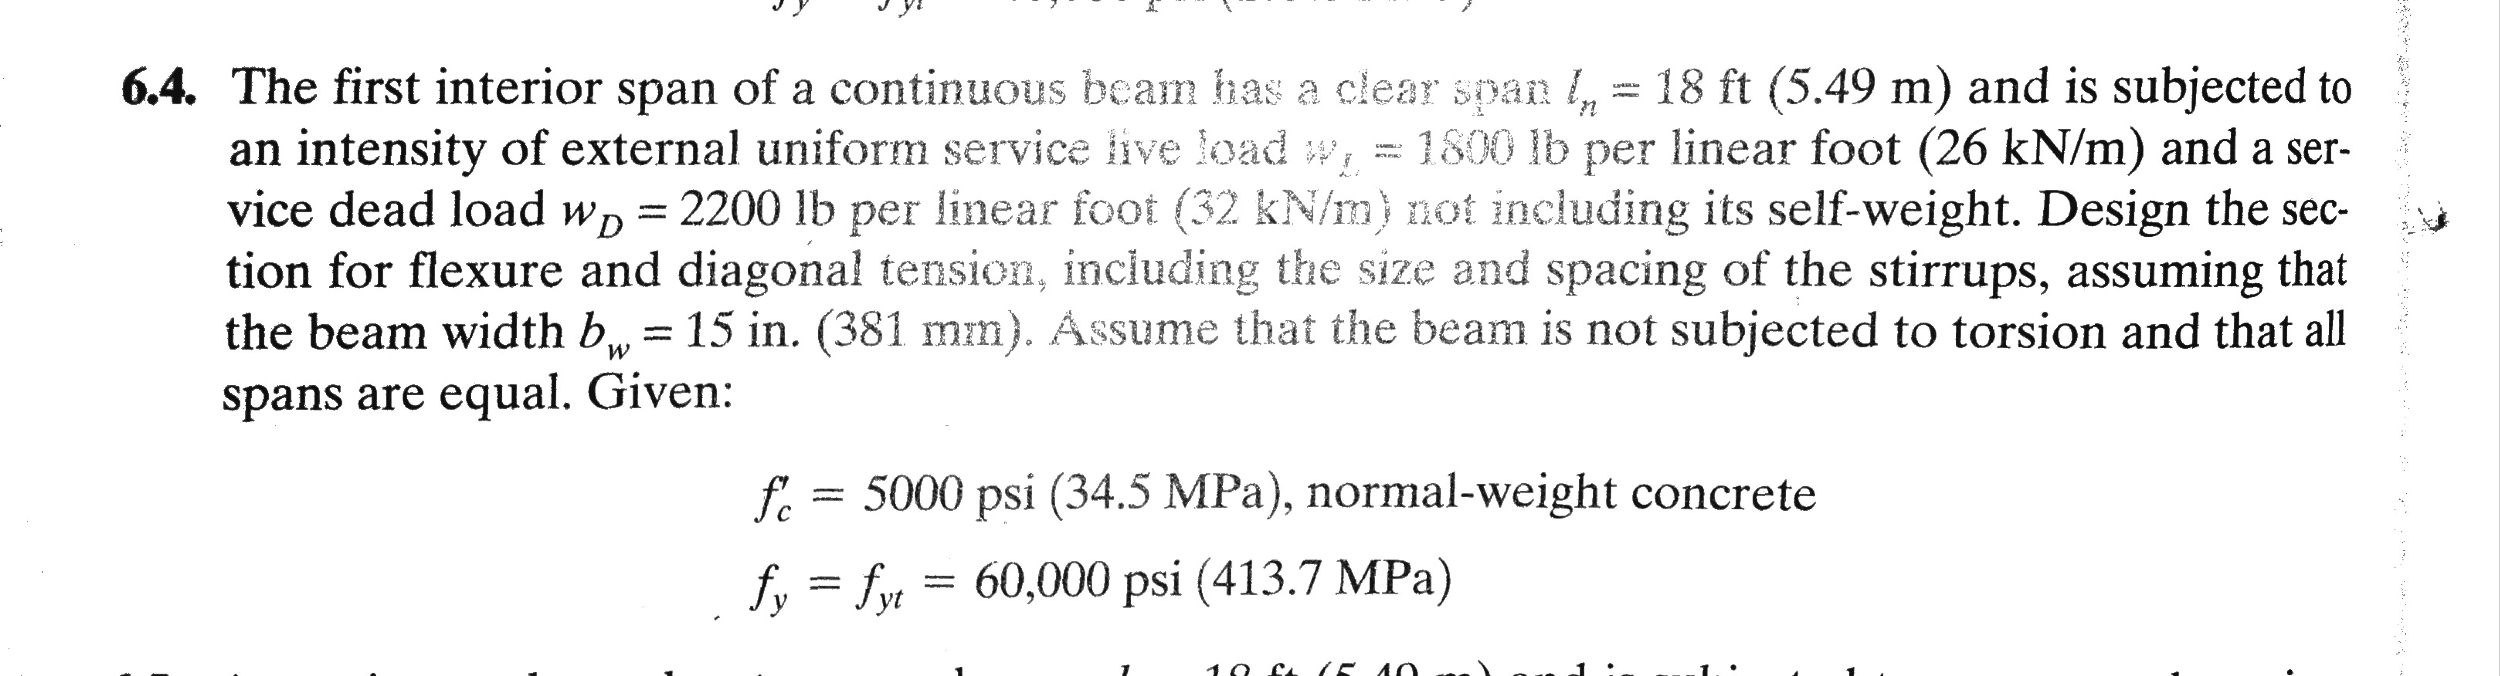 The first interior span of a continuous beam has a